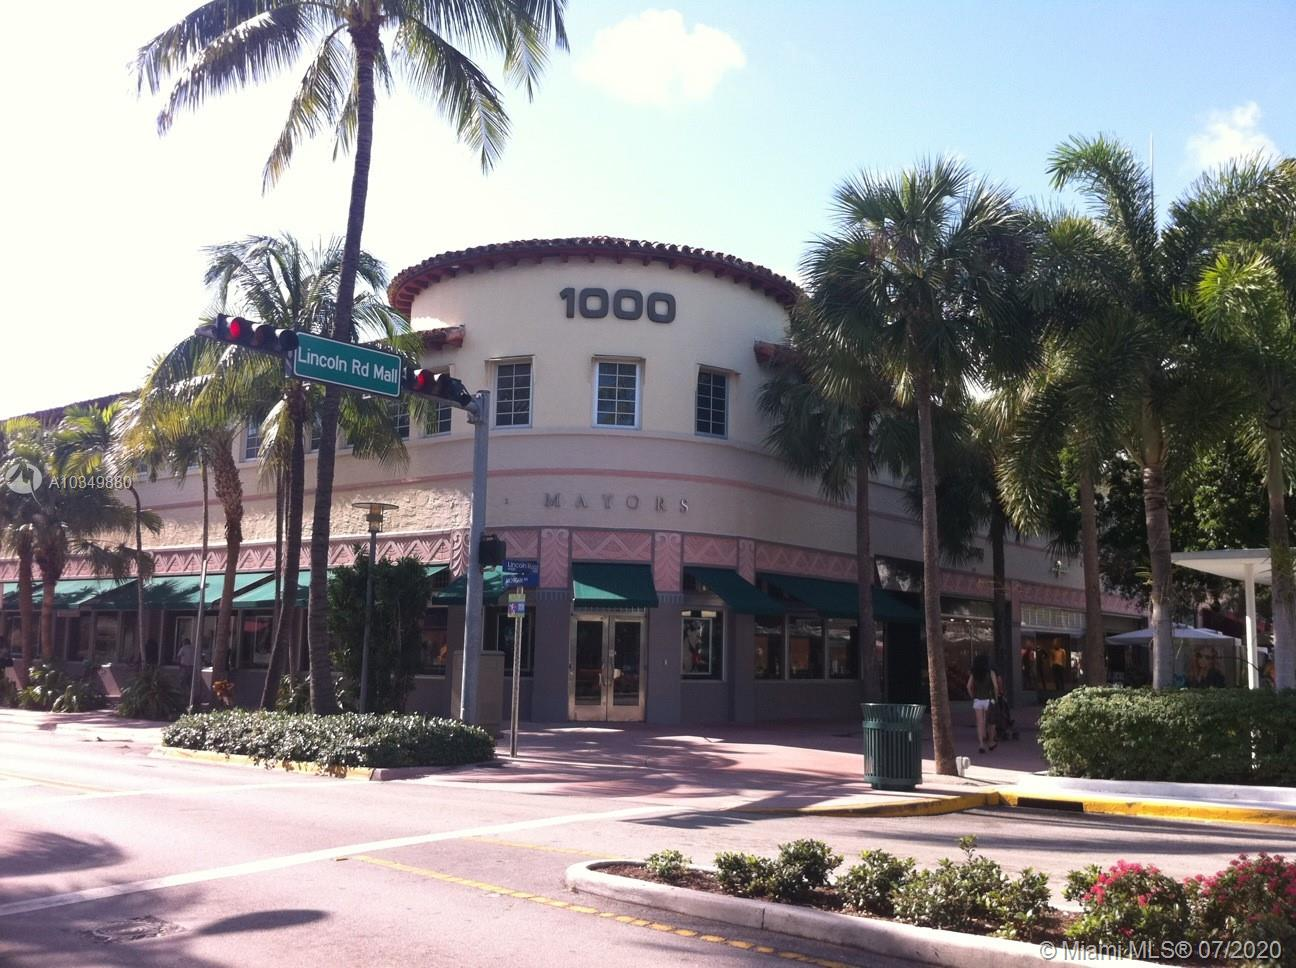 1000 Lincoln Rd # 206, Miami Beach, Florida 33139, ,Commercial Sale,For Sale,1000 Lincoln Rd # 206,A10349880